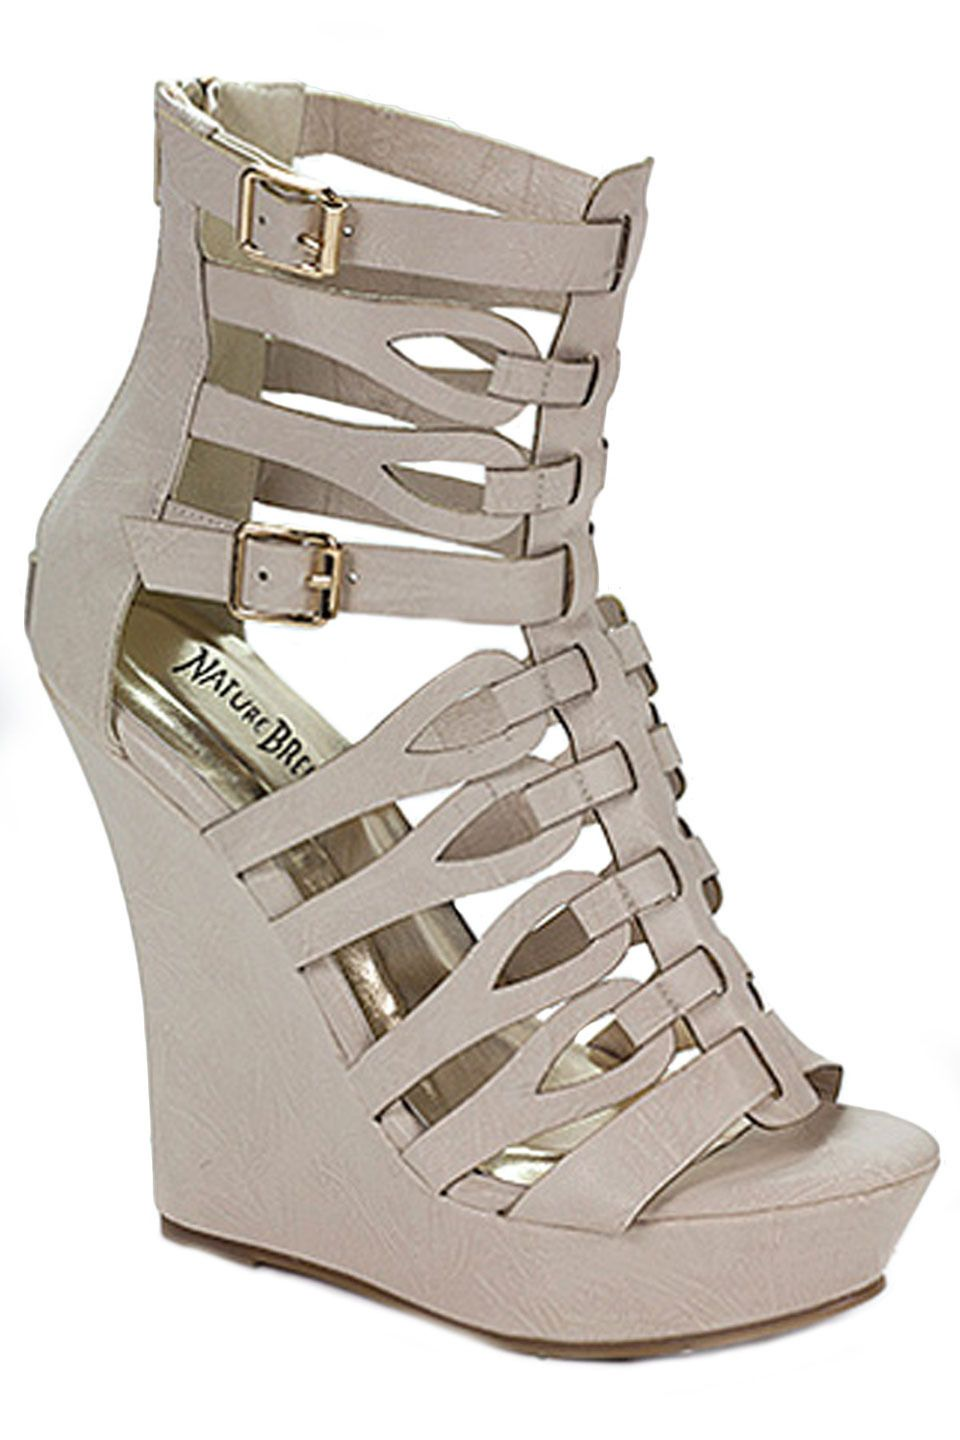 Twin Tiger Bangkok-01 Open Toe Strap Wedges in Off White - Beyond the Rack $24.99